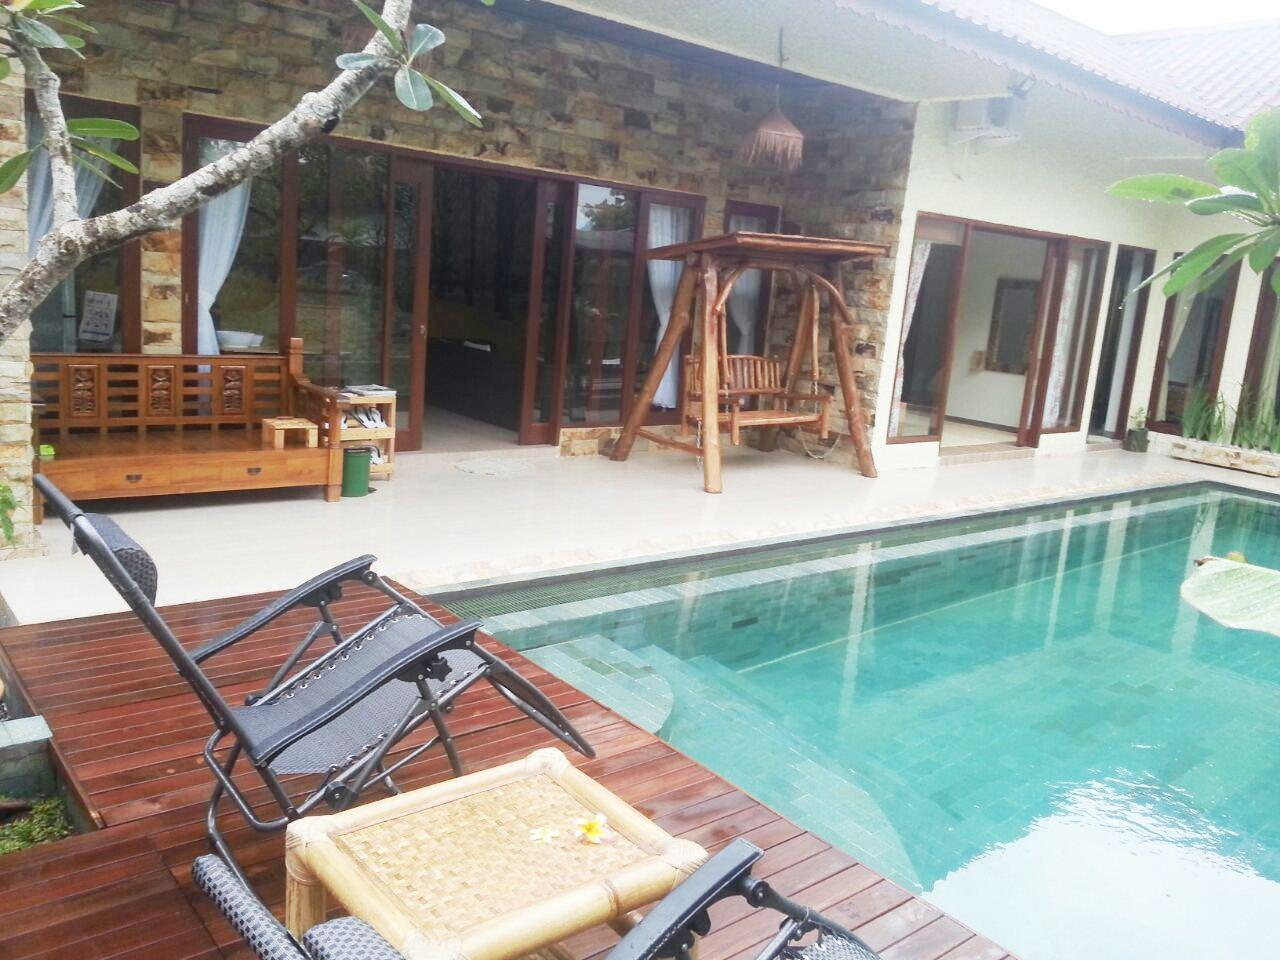 3 Bedrooms Natural Calmness Villa With Private Pool And Garden View